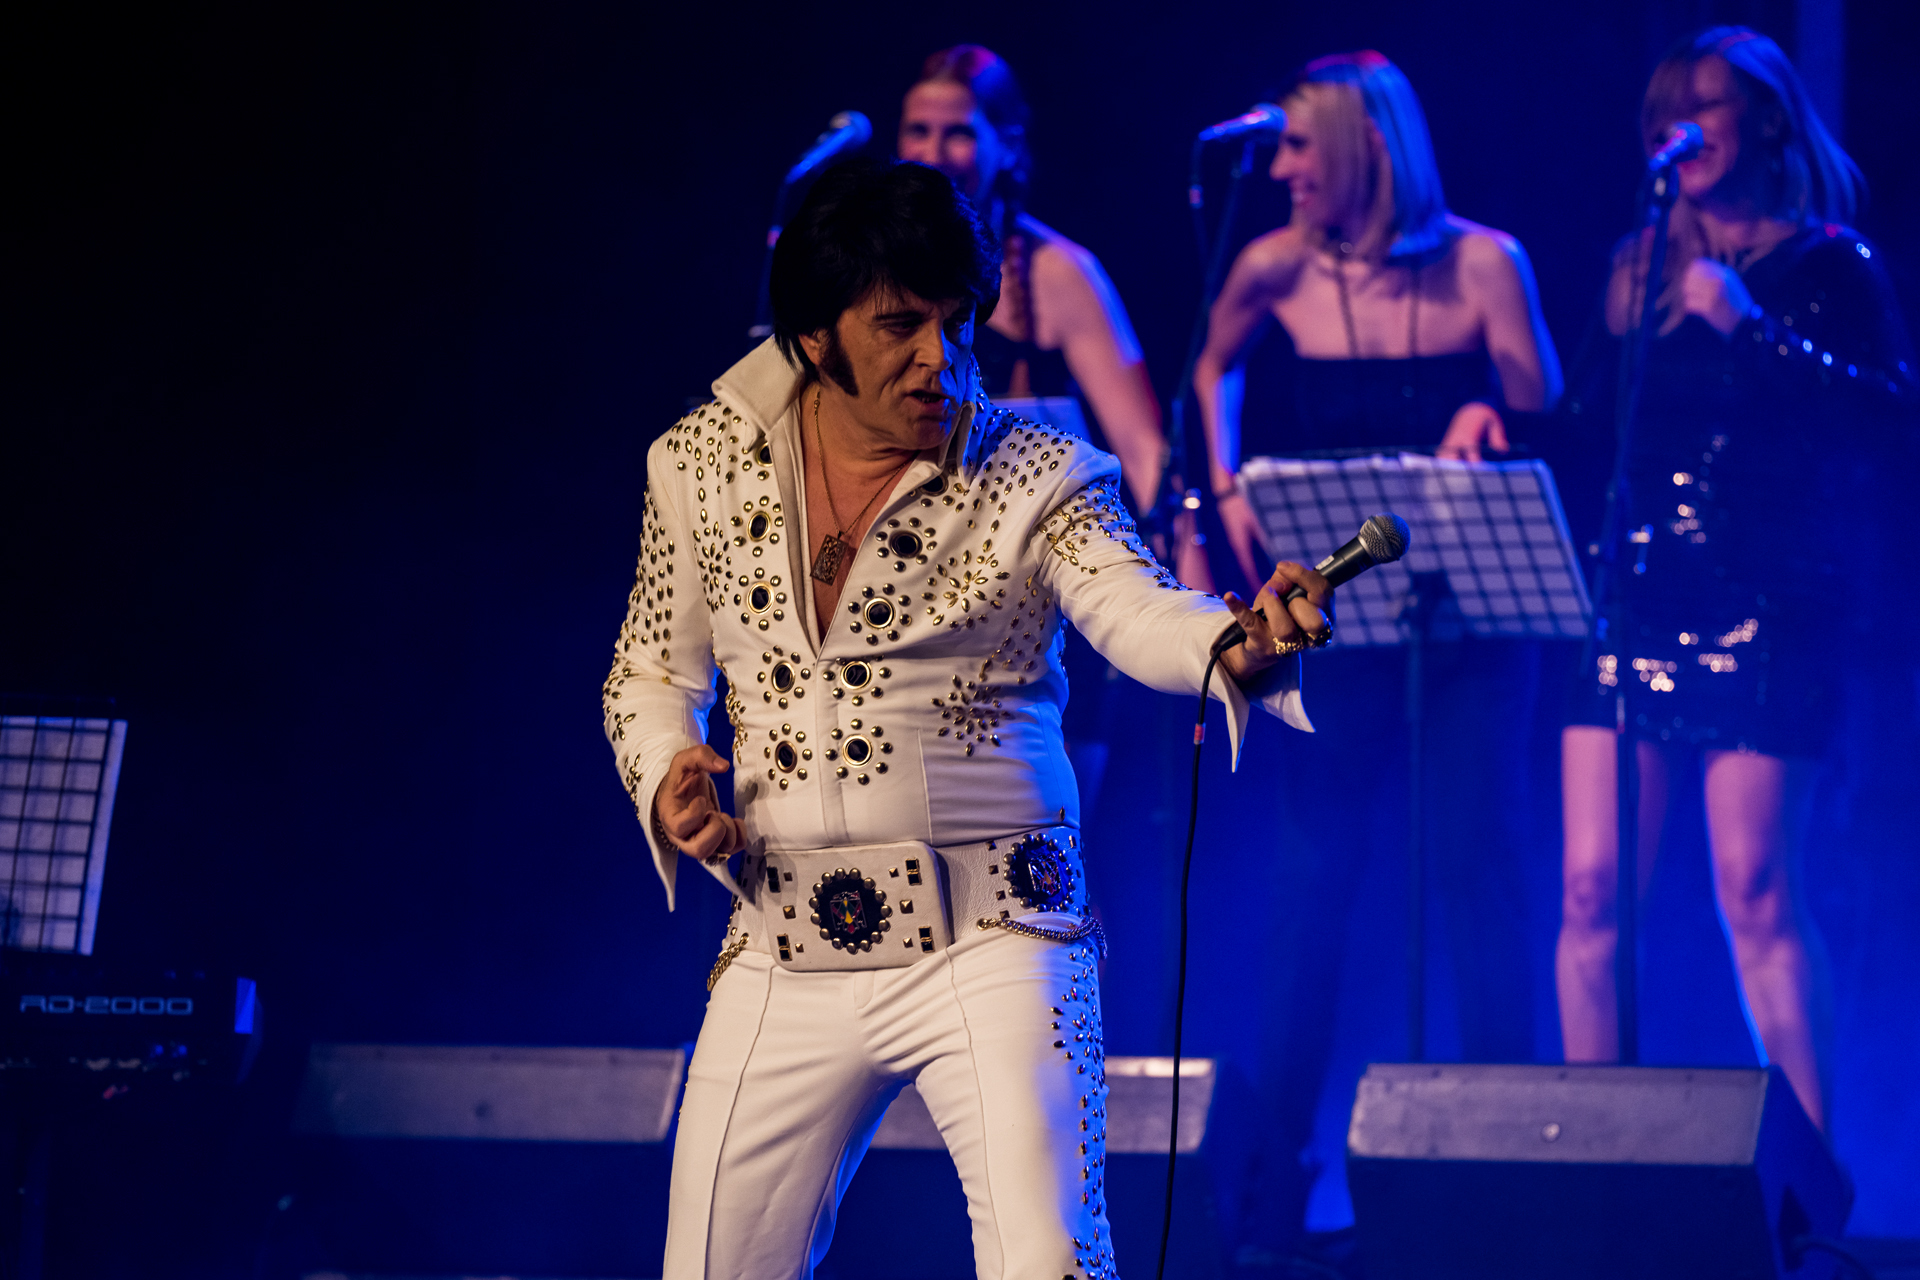 2020_01_14-we4show-Elvis-©-Luca-Vantusso-212327-GFXS2102